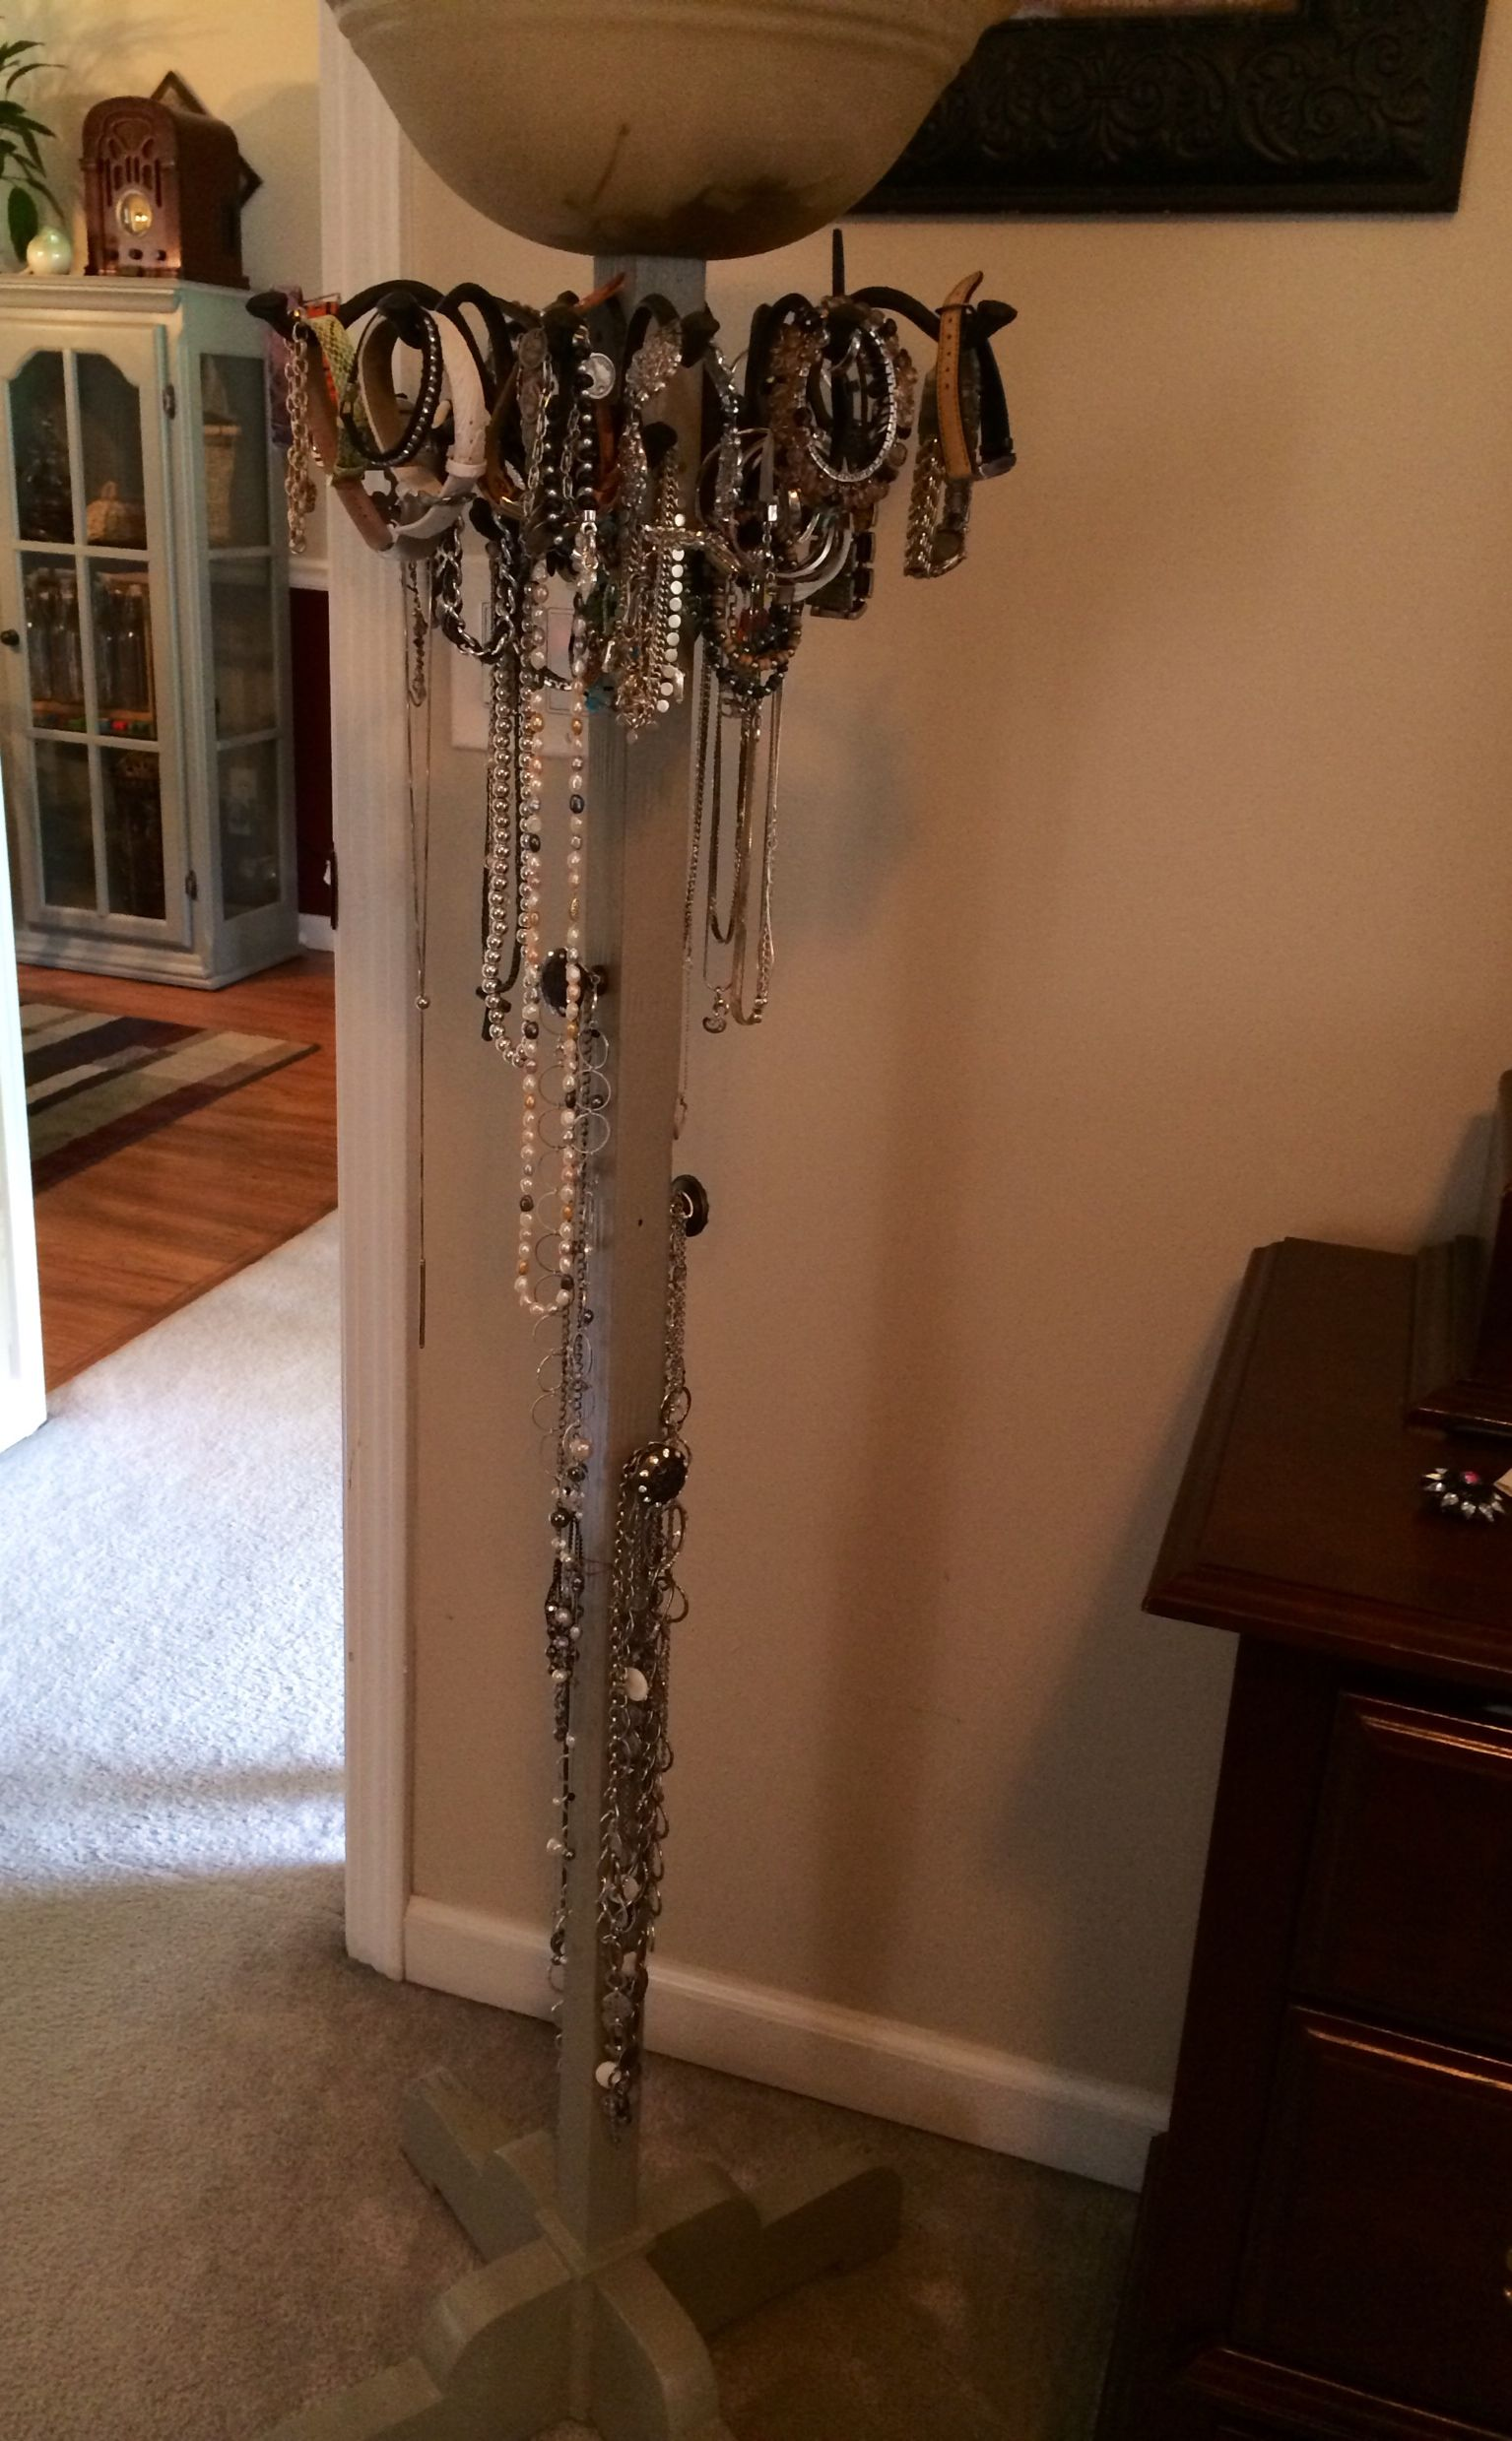 old coat rack with knobs and light fixture to make a jewelry holder